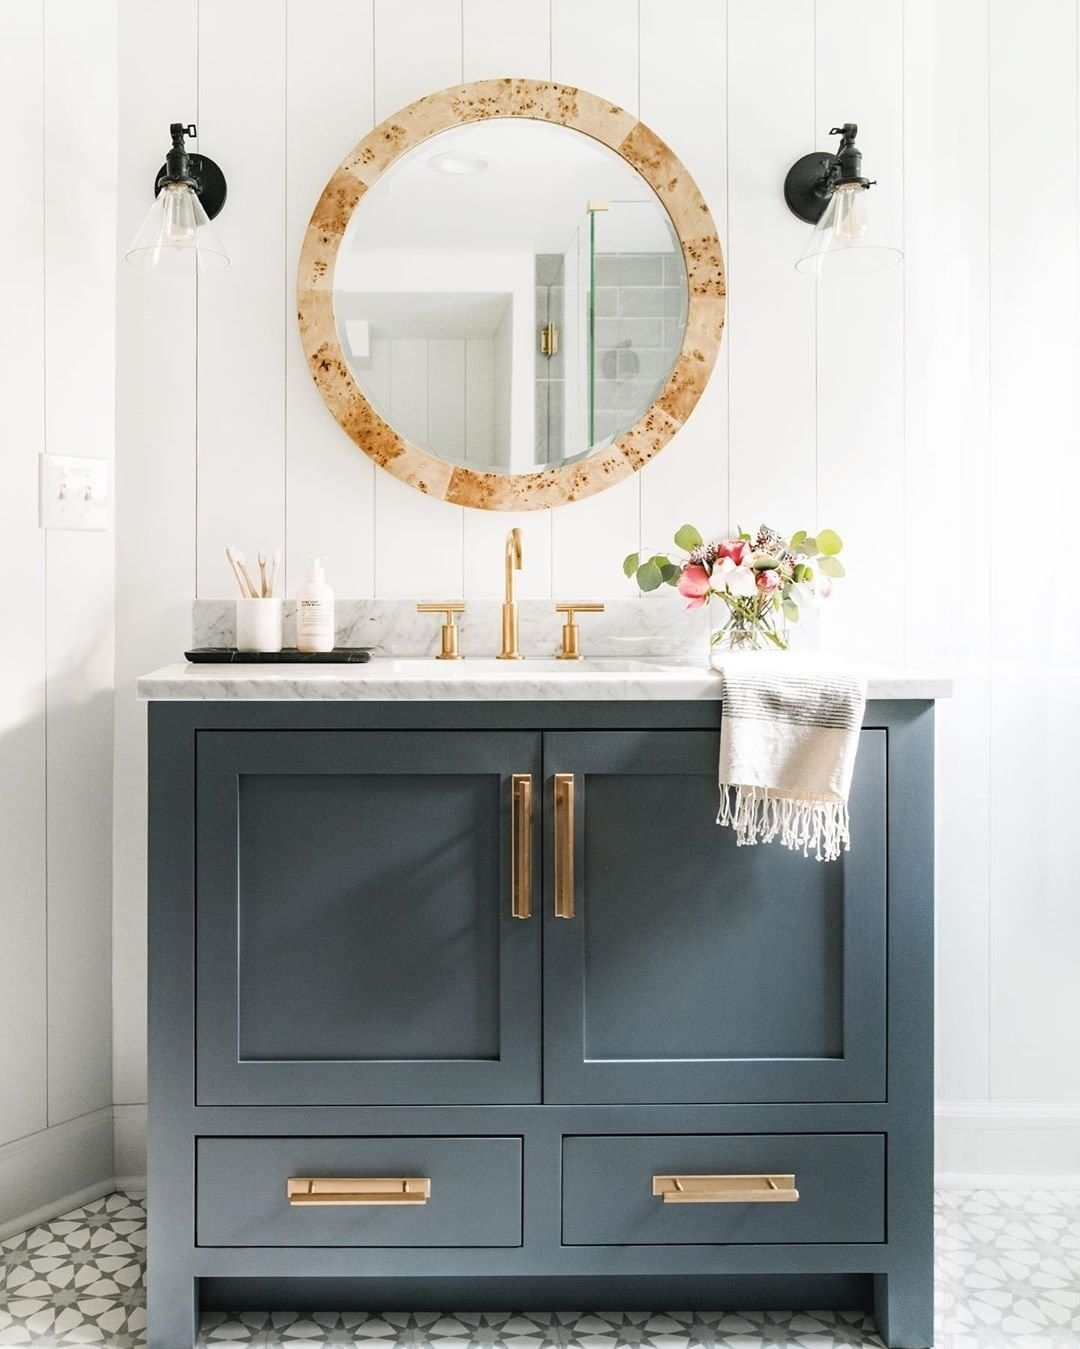 Cb2 On Instagram Tfw All The Hardware Matches Cohesivelycurated Link In Bio To Shop The Hardware S Vanity Design Blue Bathroom Vanity Timeless Bathroom